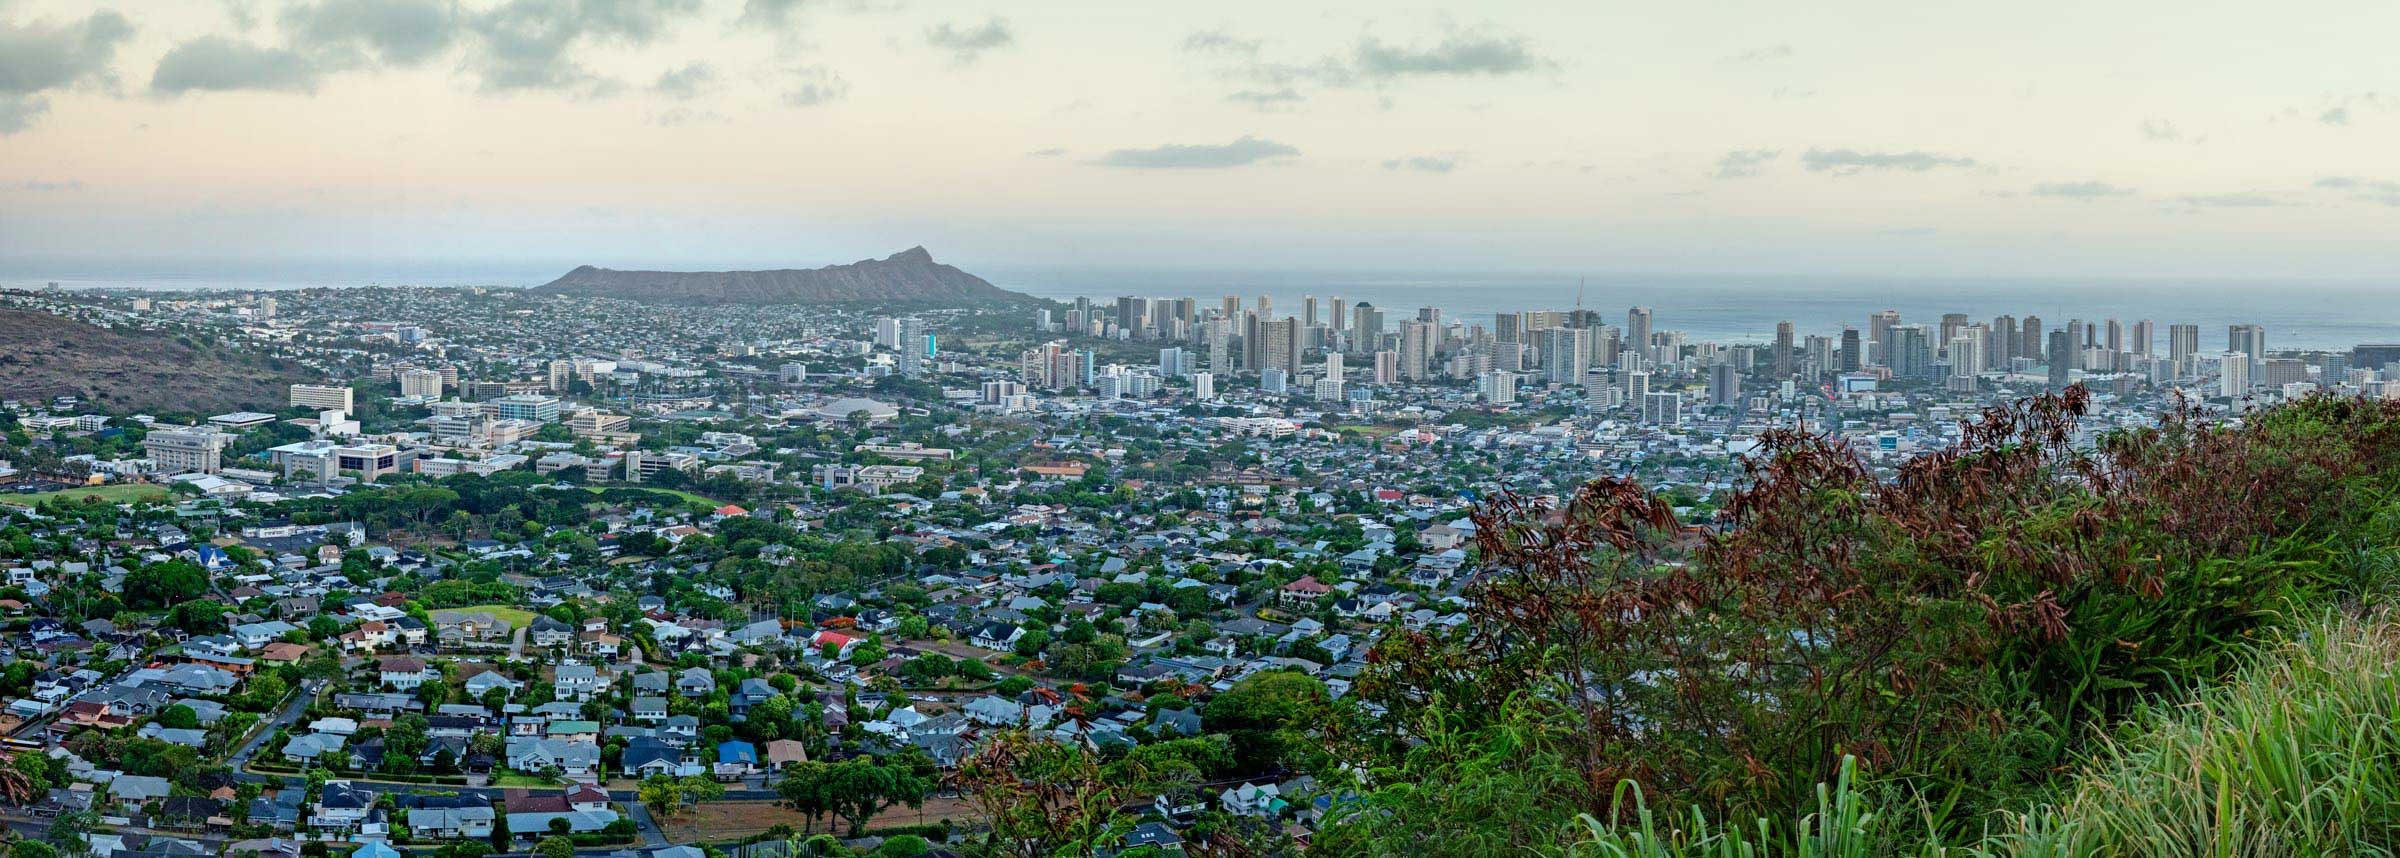 Honolulu-Skyline.jpg